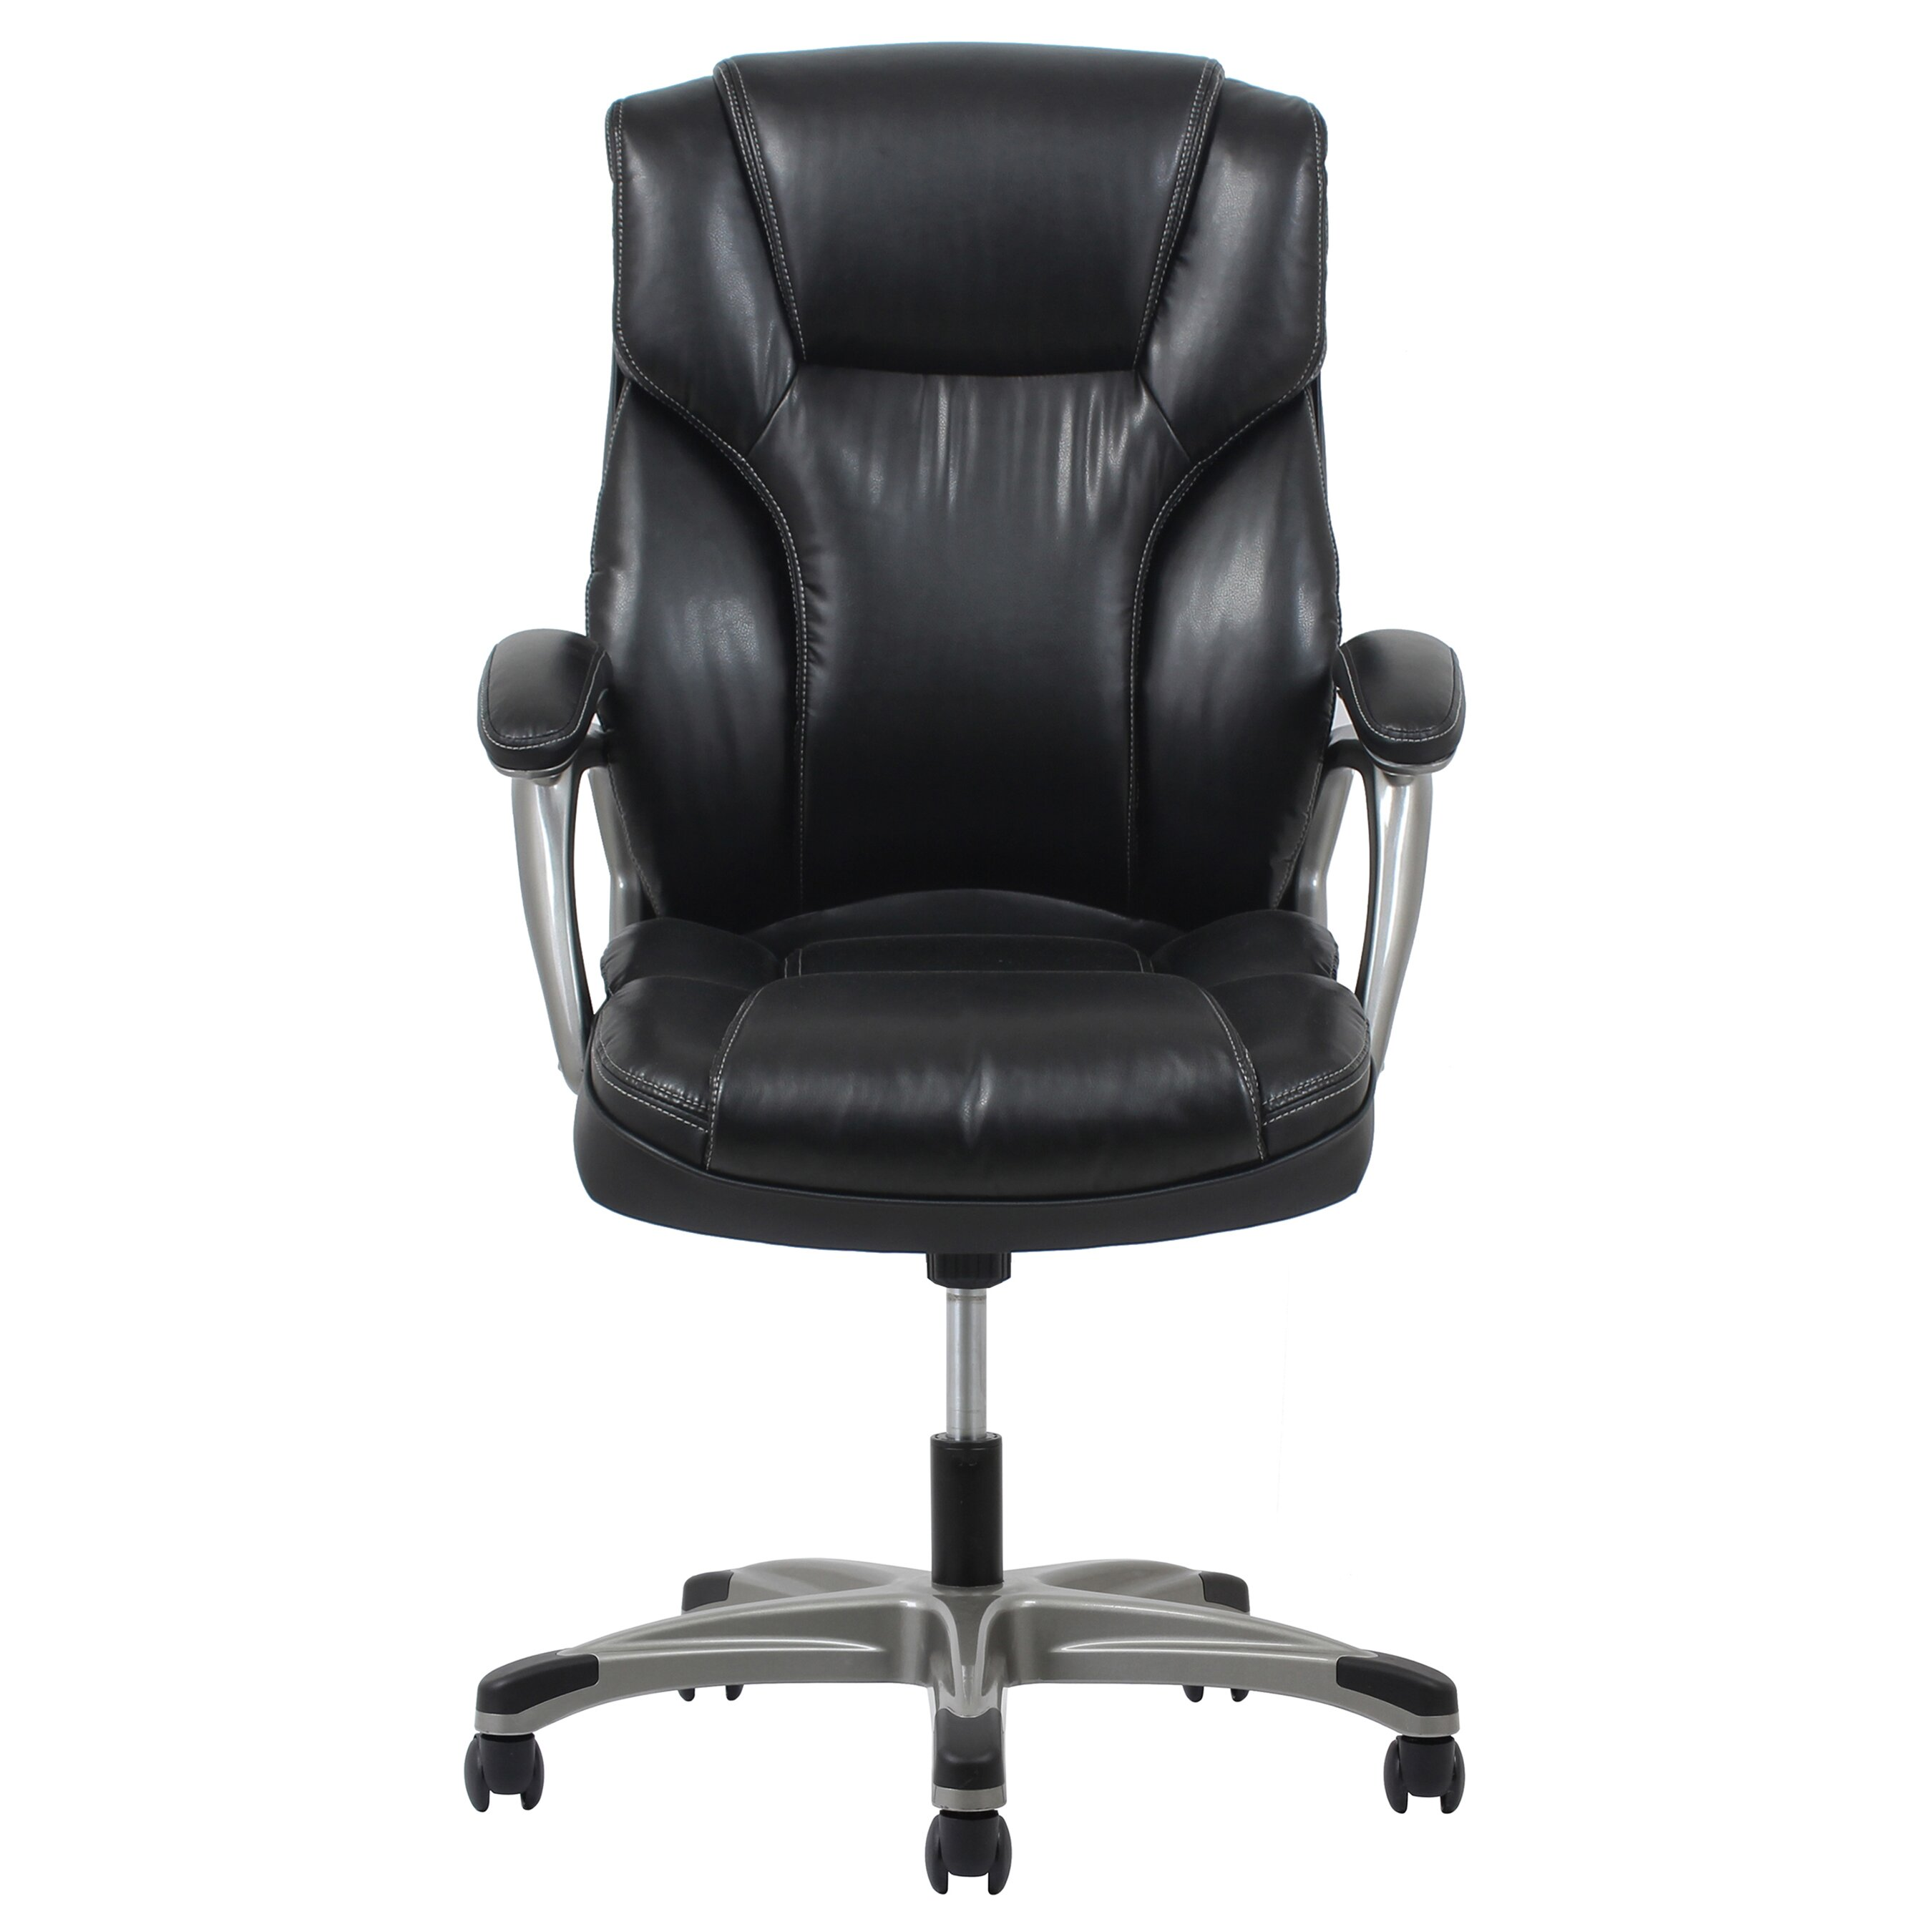 Ofm ergonomic high back leather executive office chair for High back leather chairs